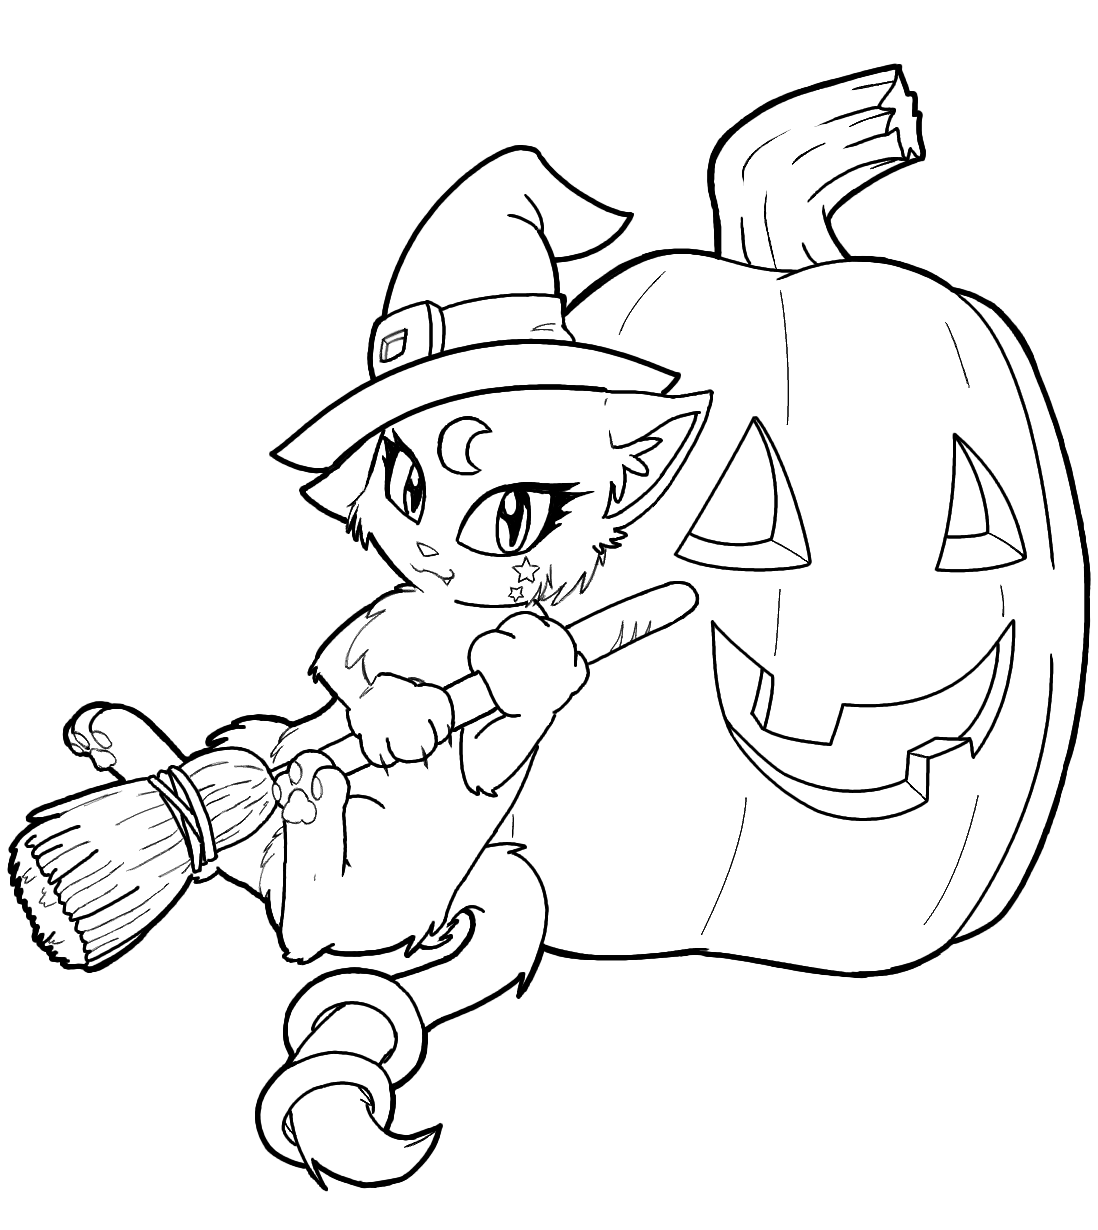 1098x1230 Free Printable Witch Coloring Pages For Kids